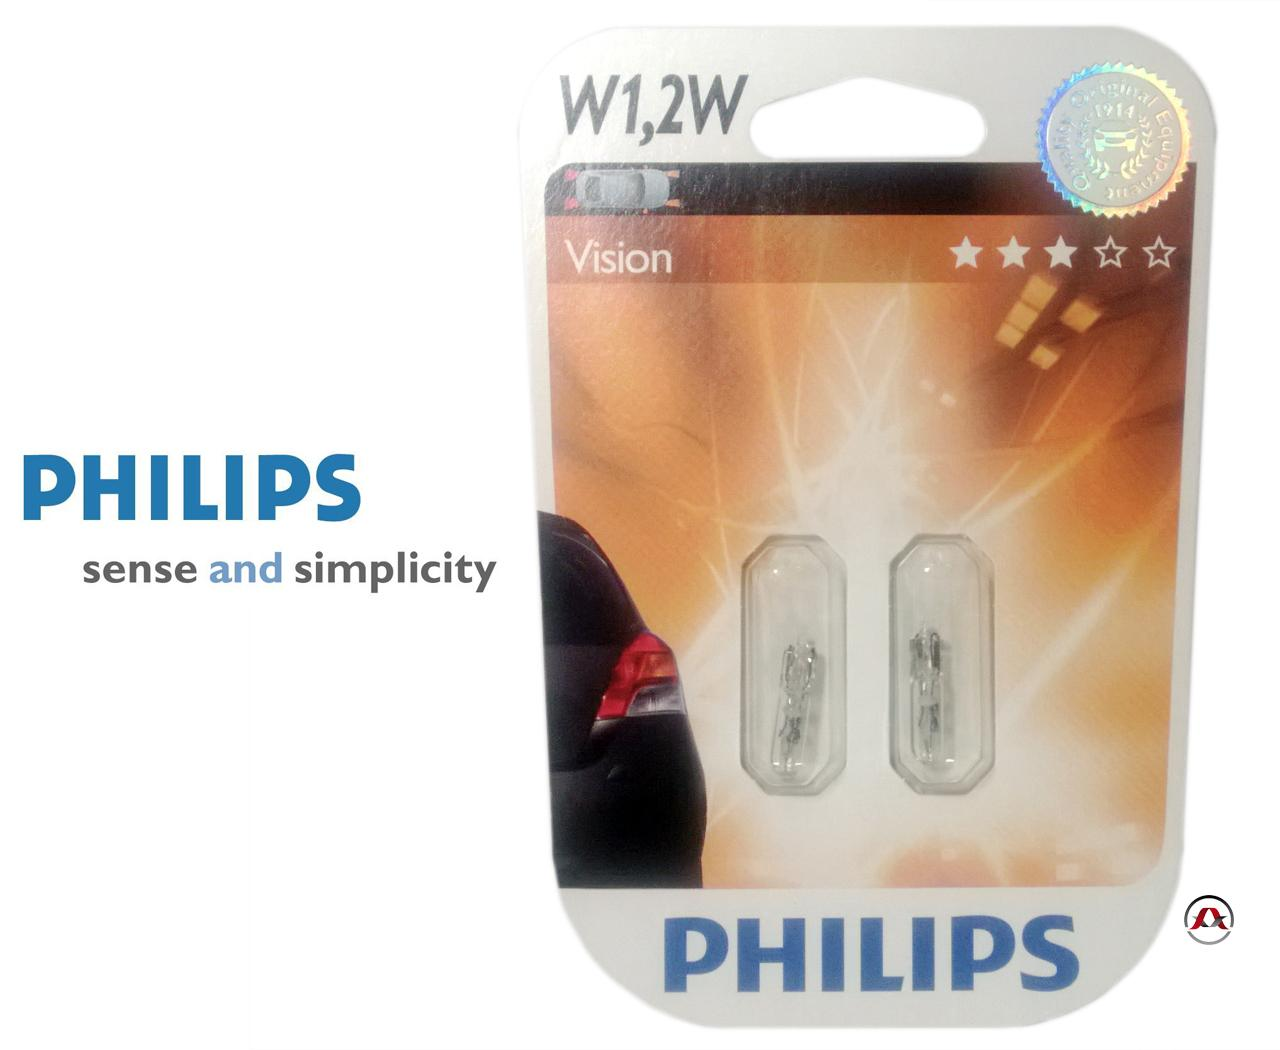 ampoule voiture wedgebase philips w1 2w vision philips. Black Bedroom Furniture Sets. Home Design Ideas